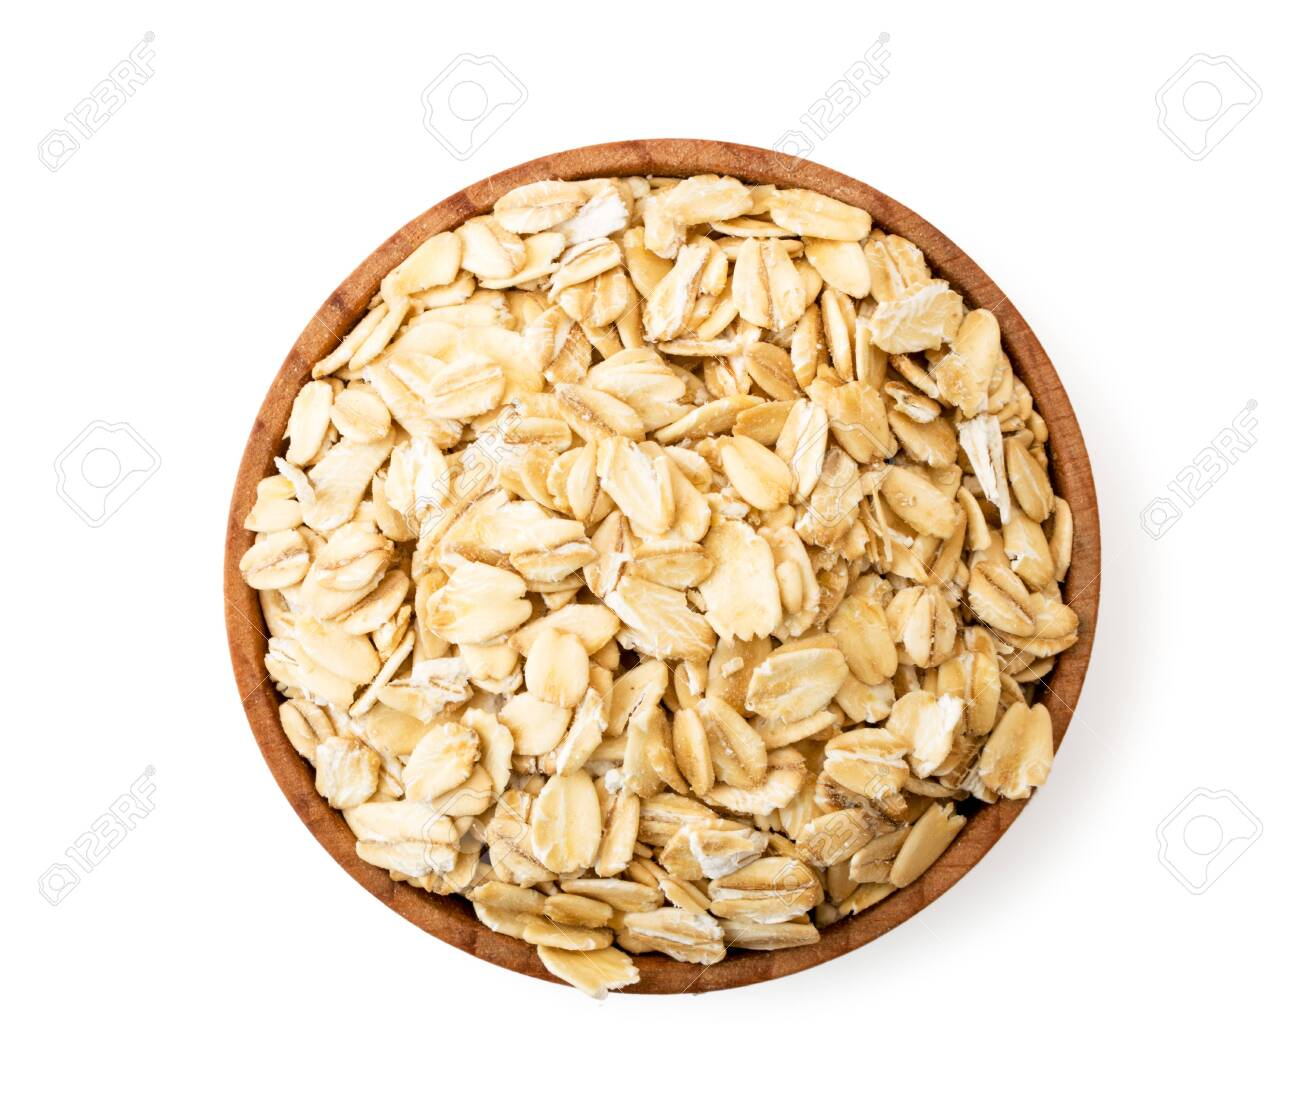 Oatmeal in a wooden plate on a white background. - 126433627